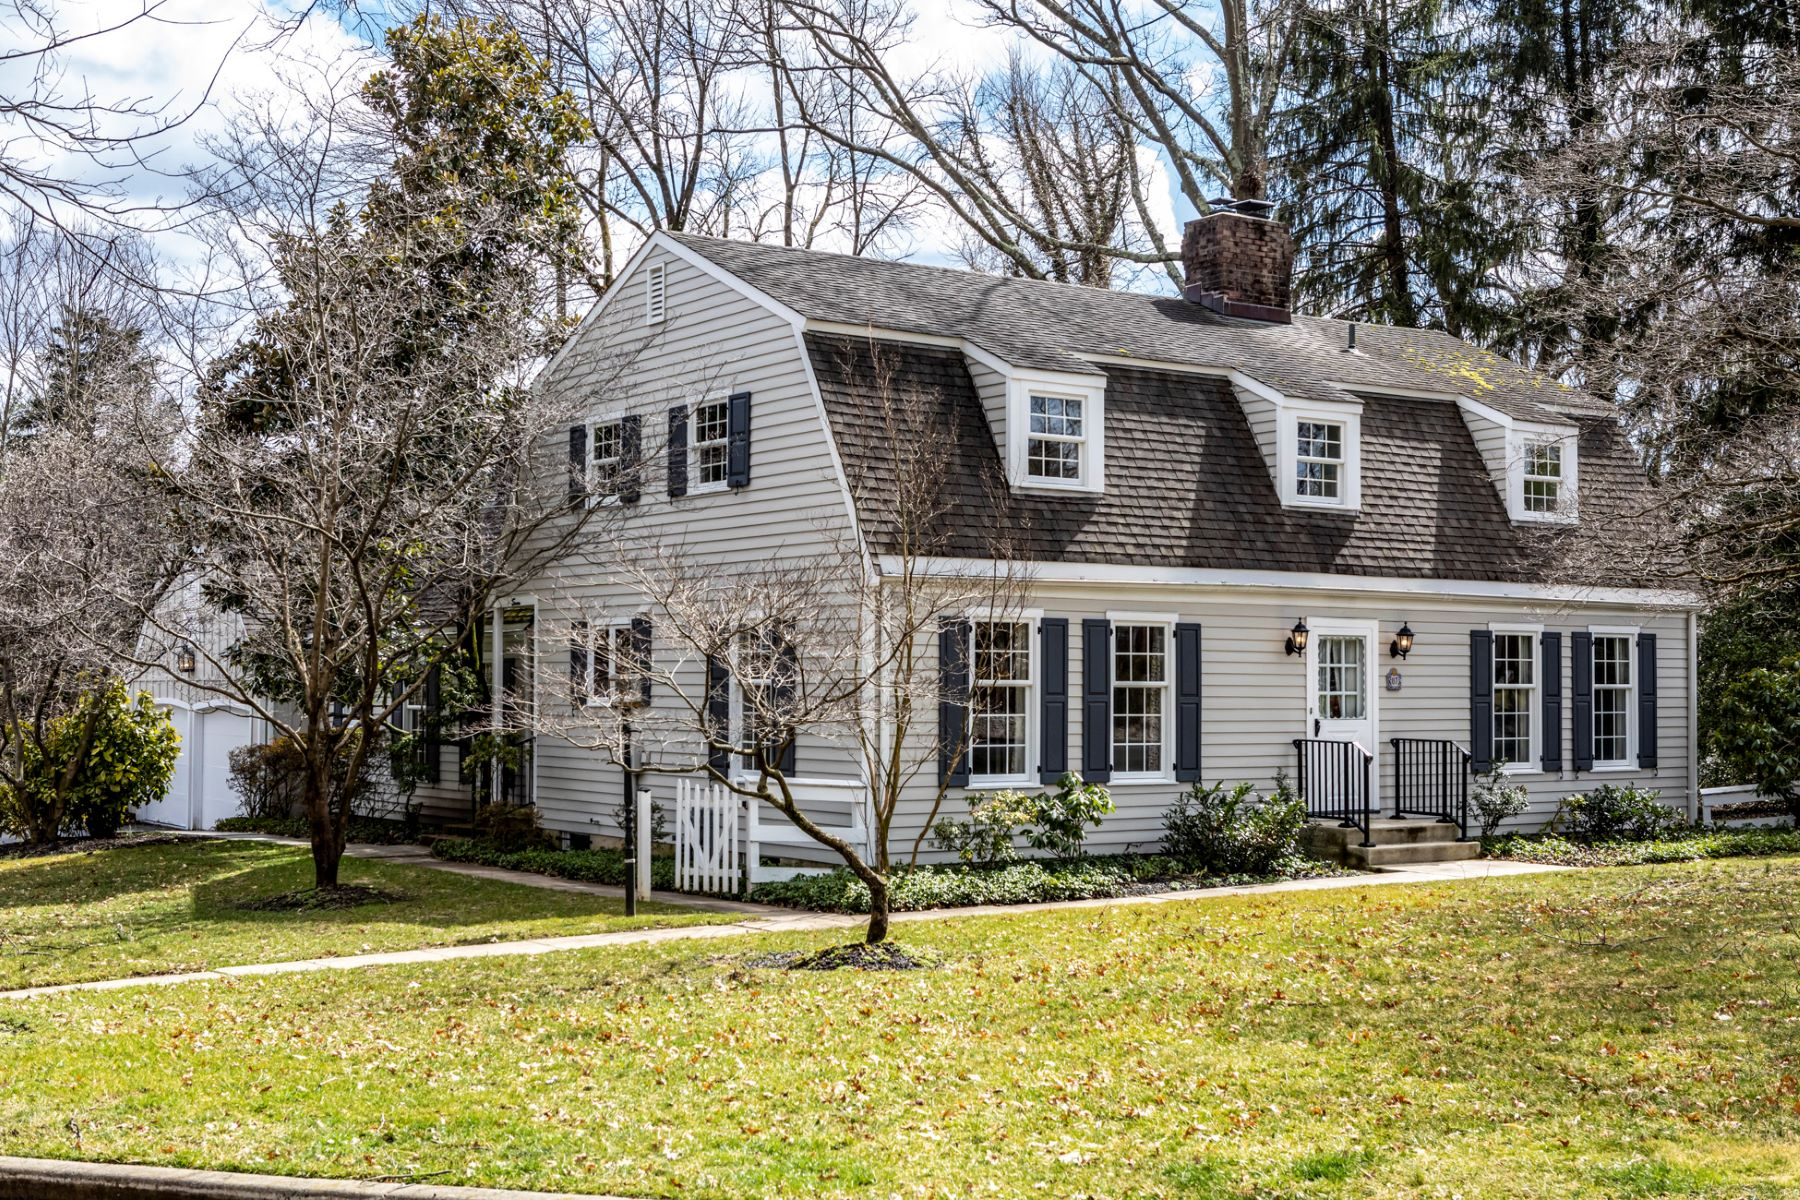 Property for Sale at Loads of Potential on a Pretty Little Cul de Sac 7 Shadowstone Lane, Lawrenceville, New Jersey 08648 United States